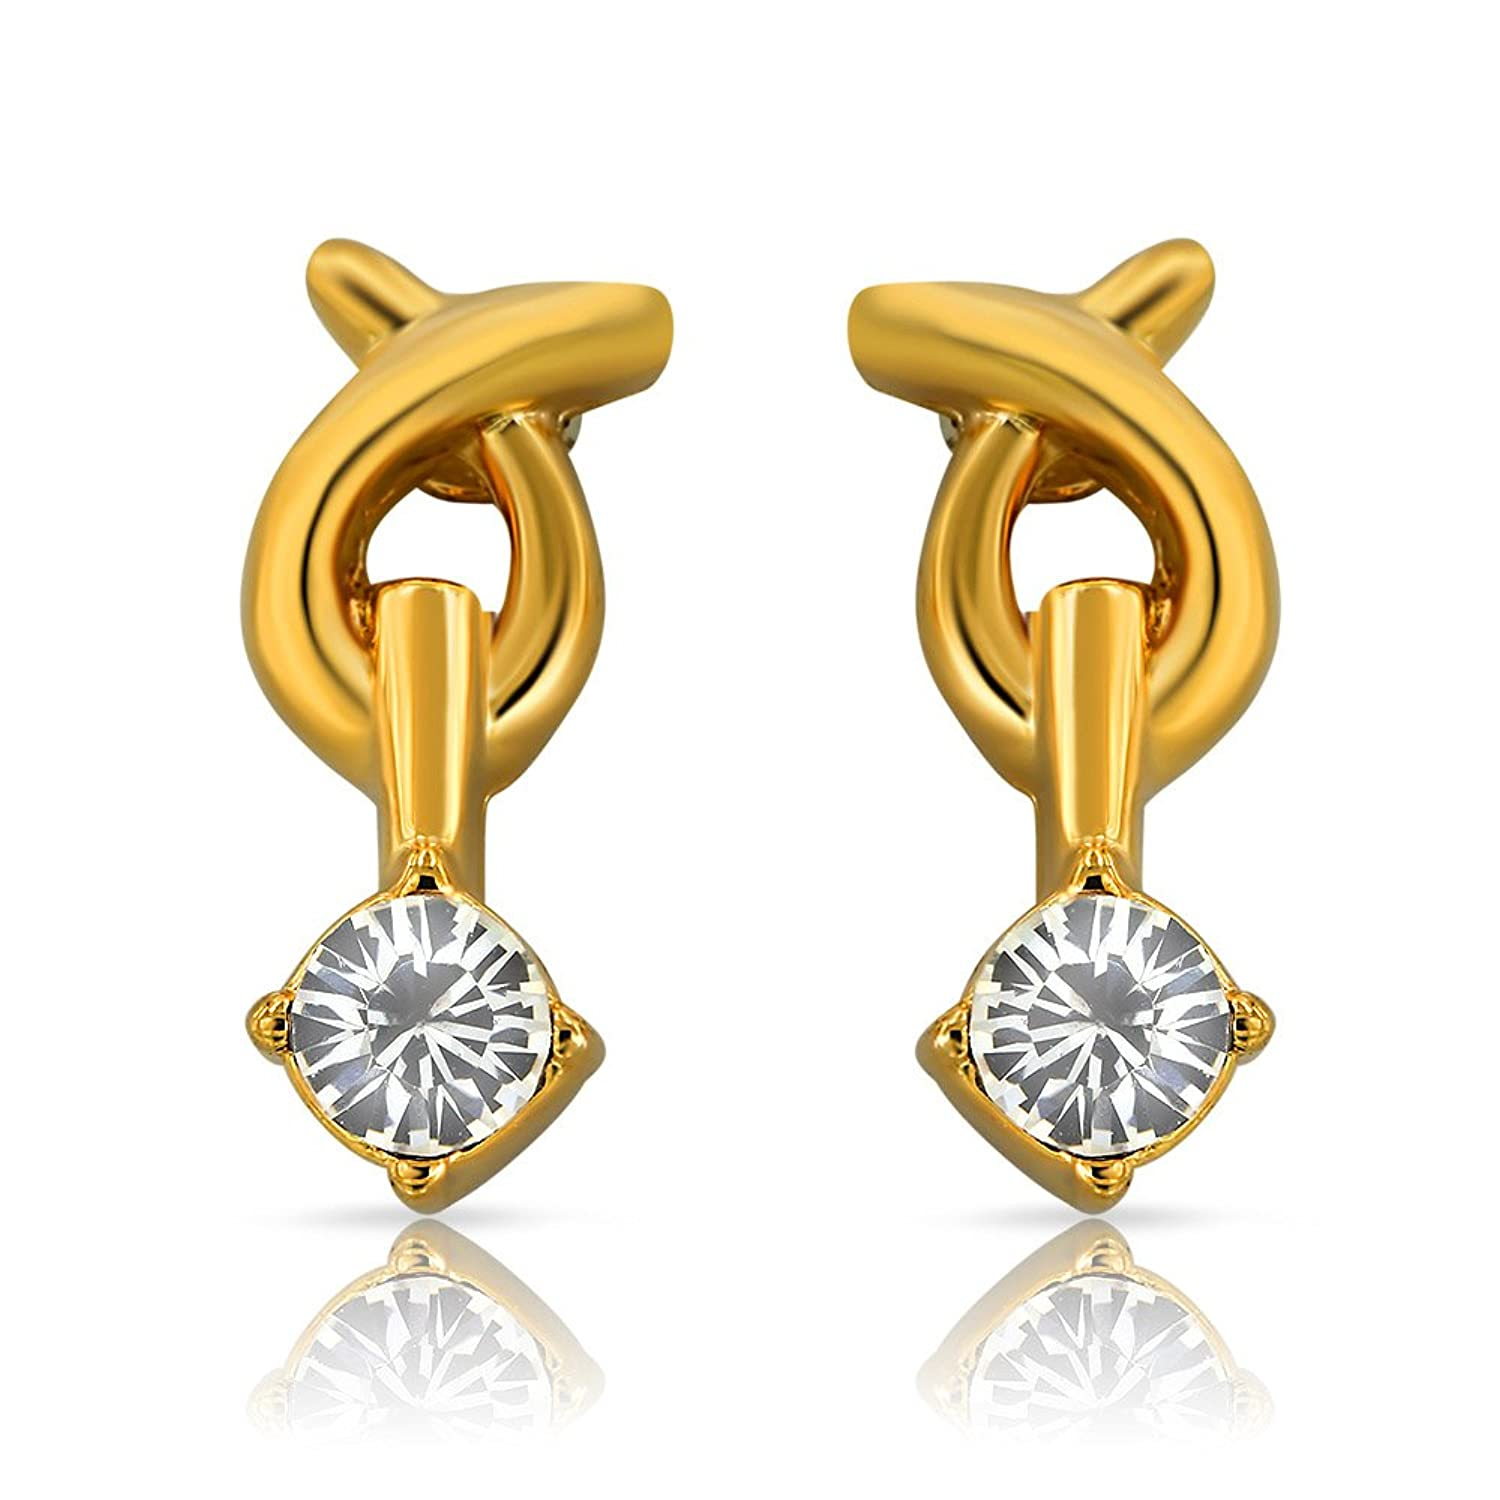 Buy Mahi Gold Plated Genius Earrings With Crystals For Women Er1108722g  Online At Low Prices In India  Amazon Jewellery Store  Amazon